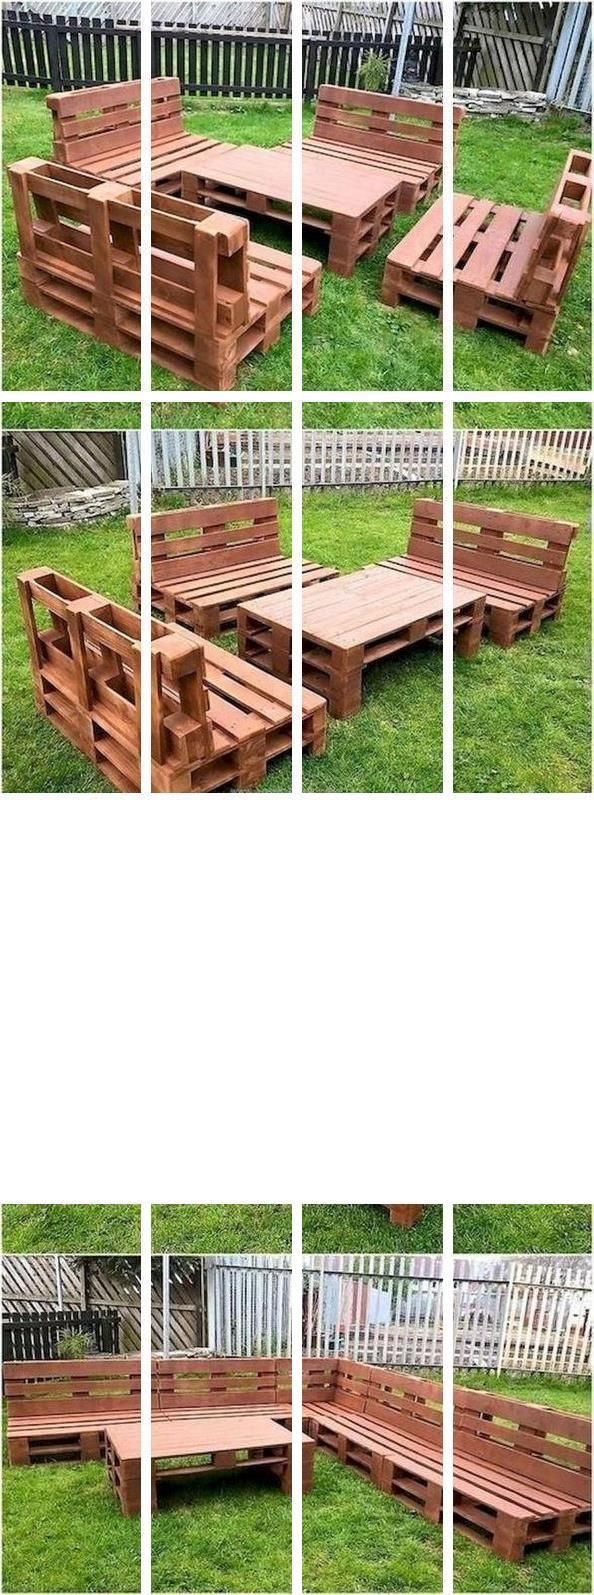 Pallet Rustic Furniture   Euro Pallet Size   How To Make ...